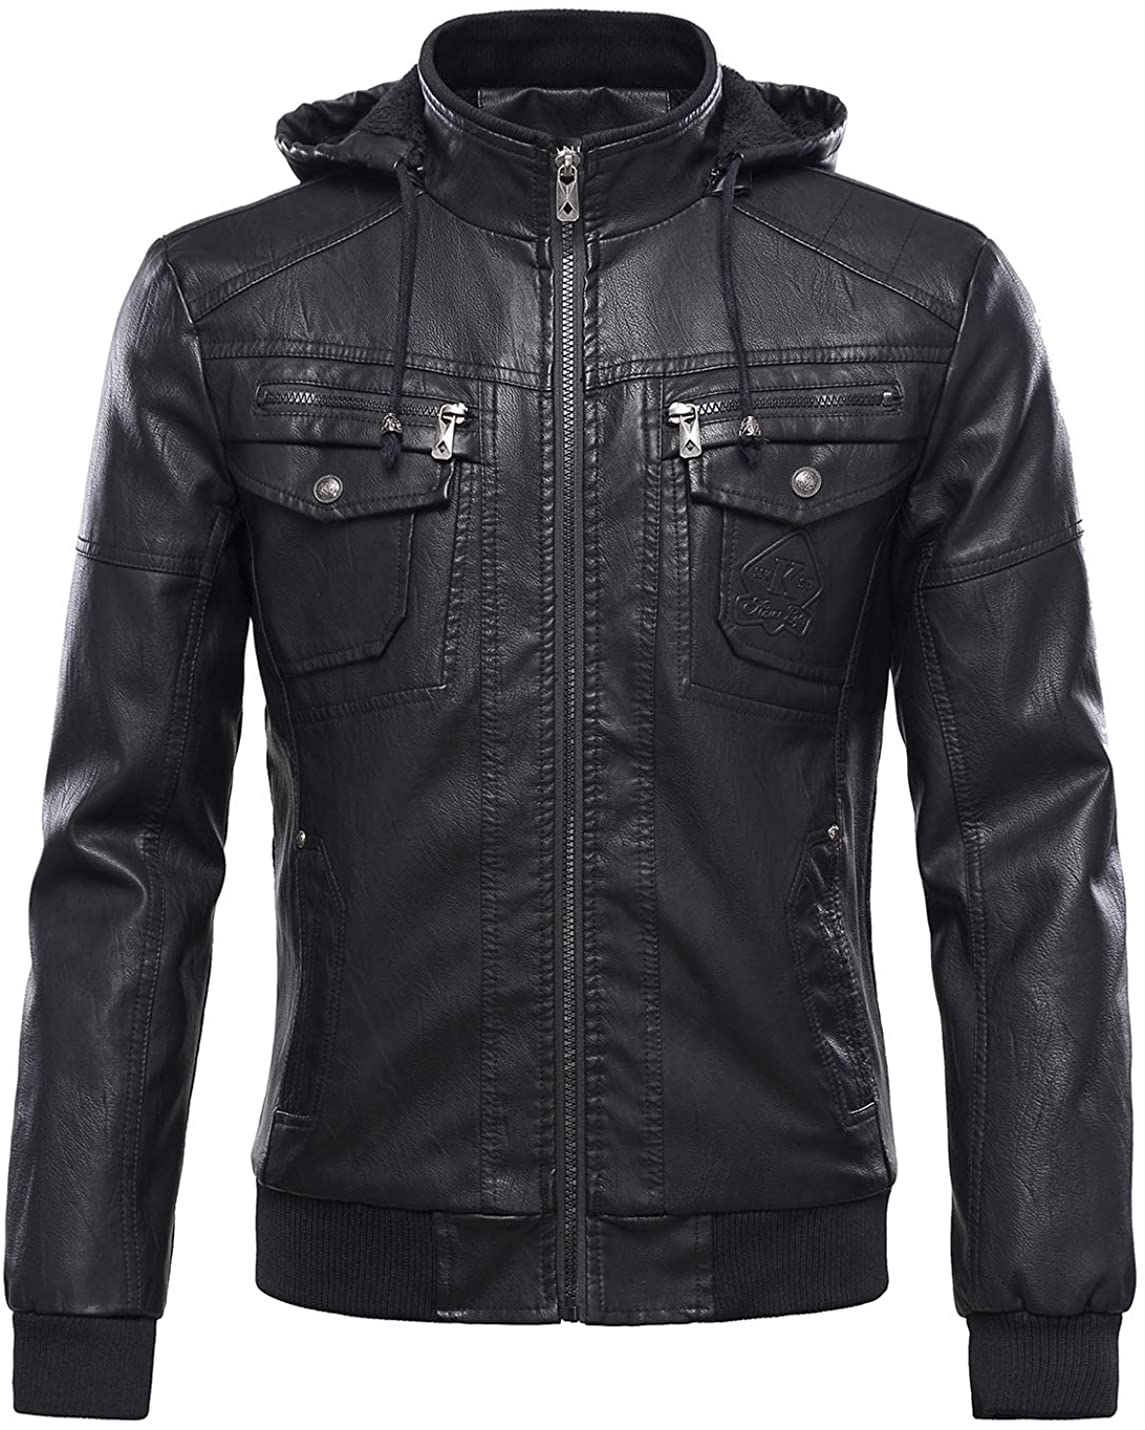 Tanming Men's Fleece Lined Motorcycle PU Faux Leather Jacket